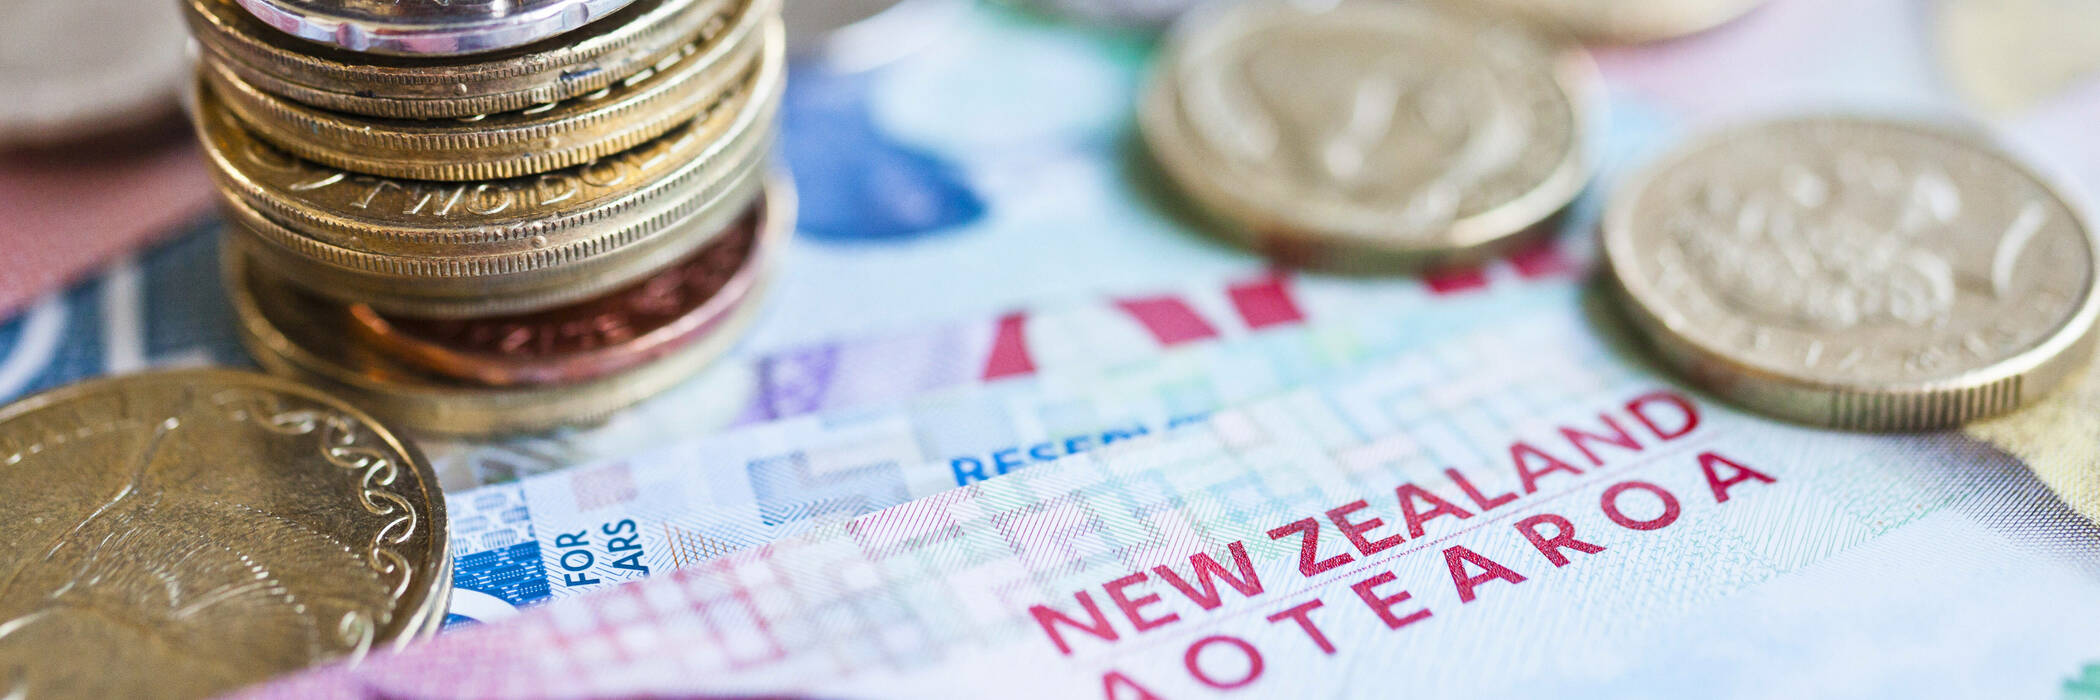 NZ banking review: What you need to know